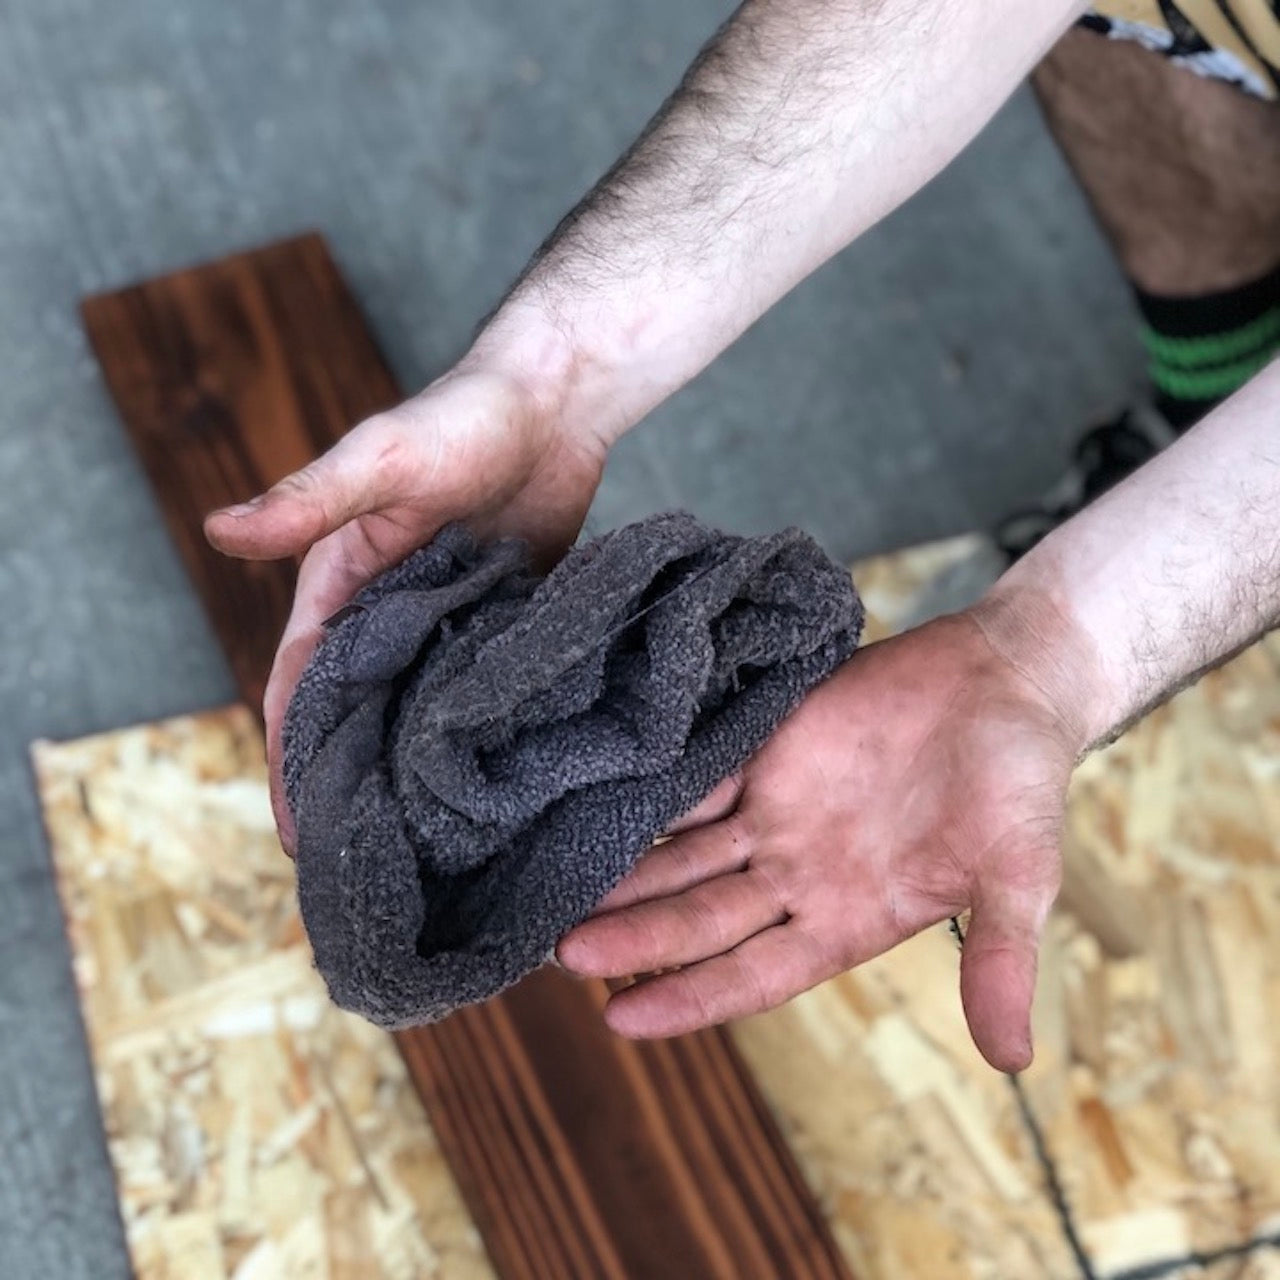 How to Remove Wood Stain From Your Hands